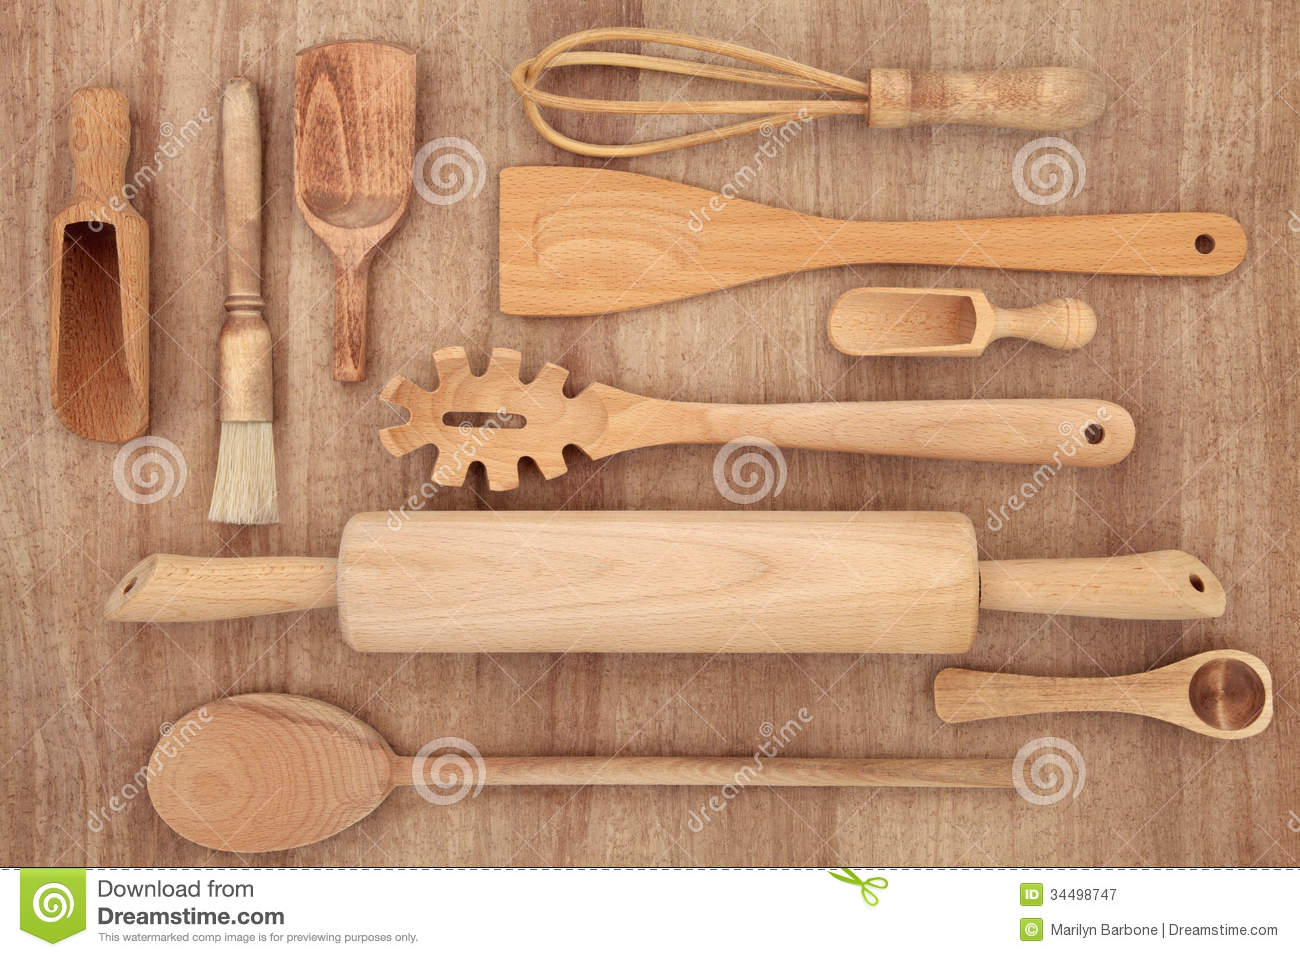 Wood Kitchen Equipment : Kitchen utensils stock image of sampler spoon